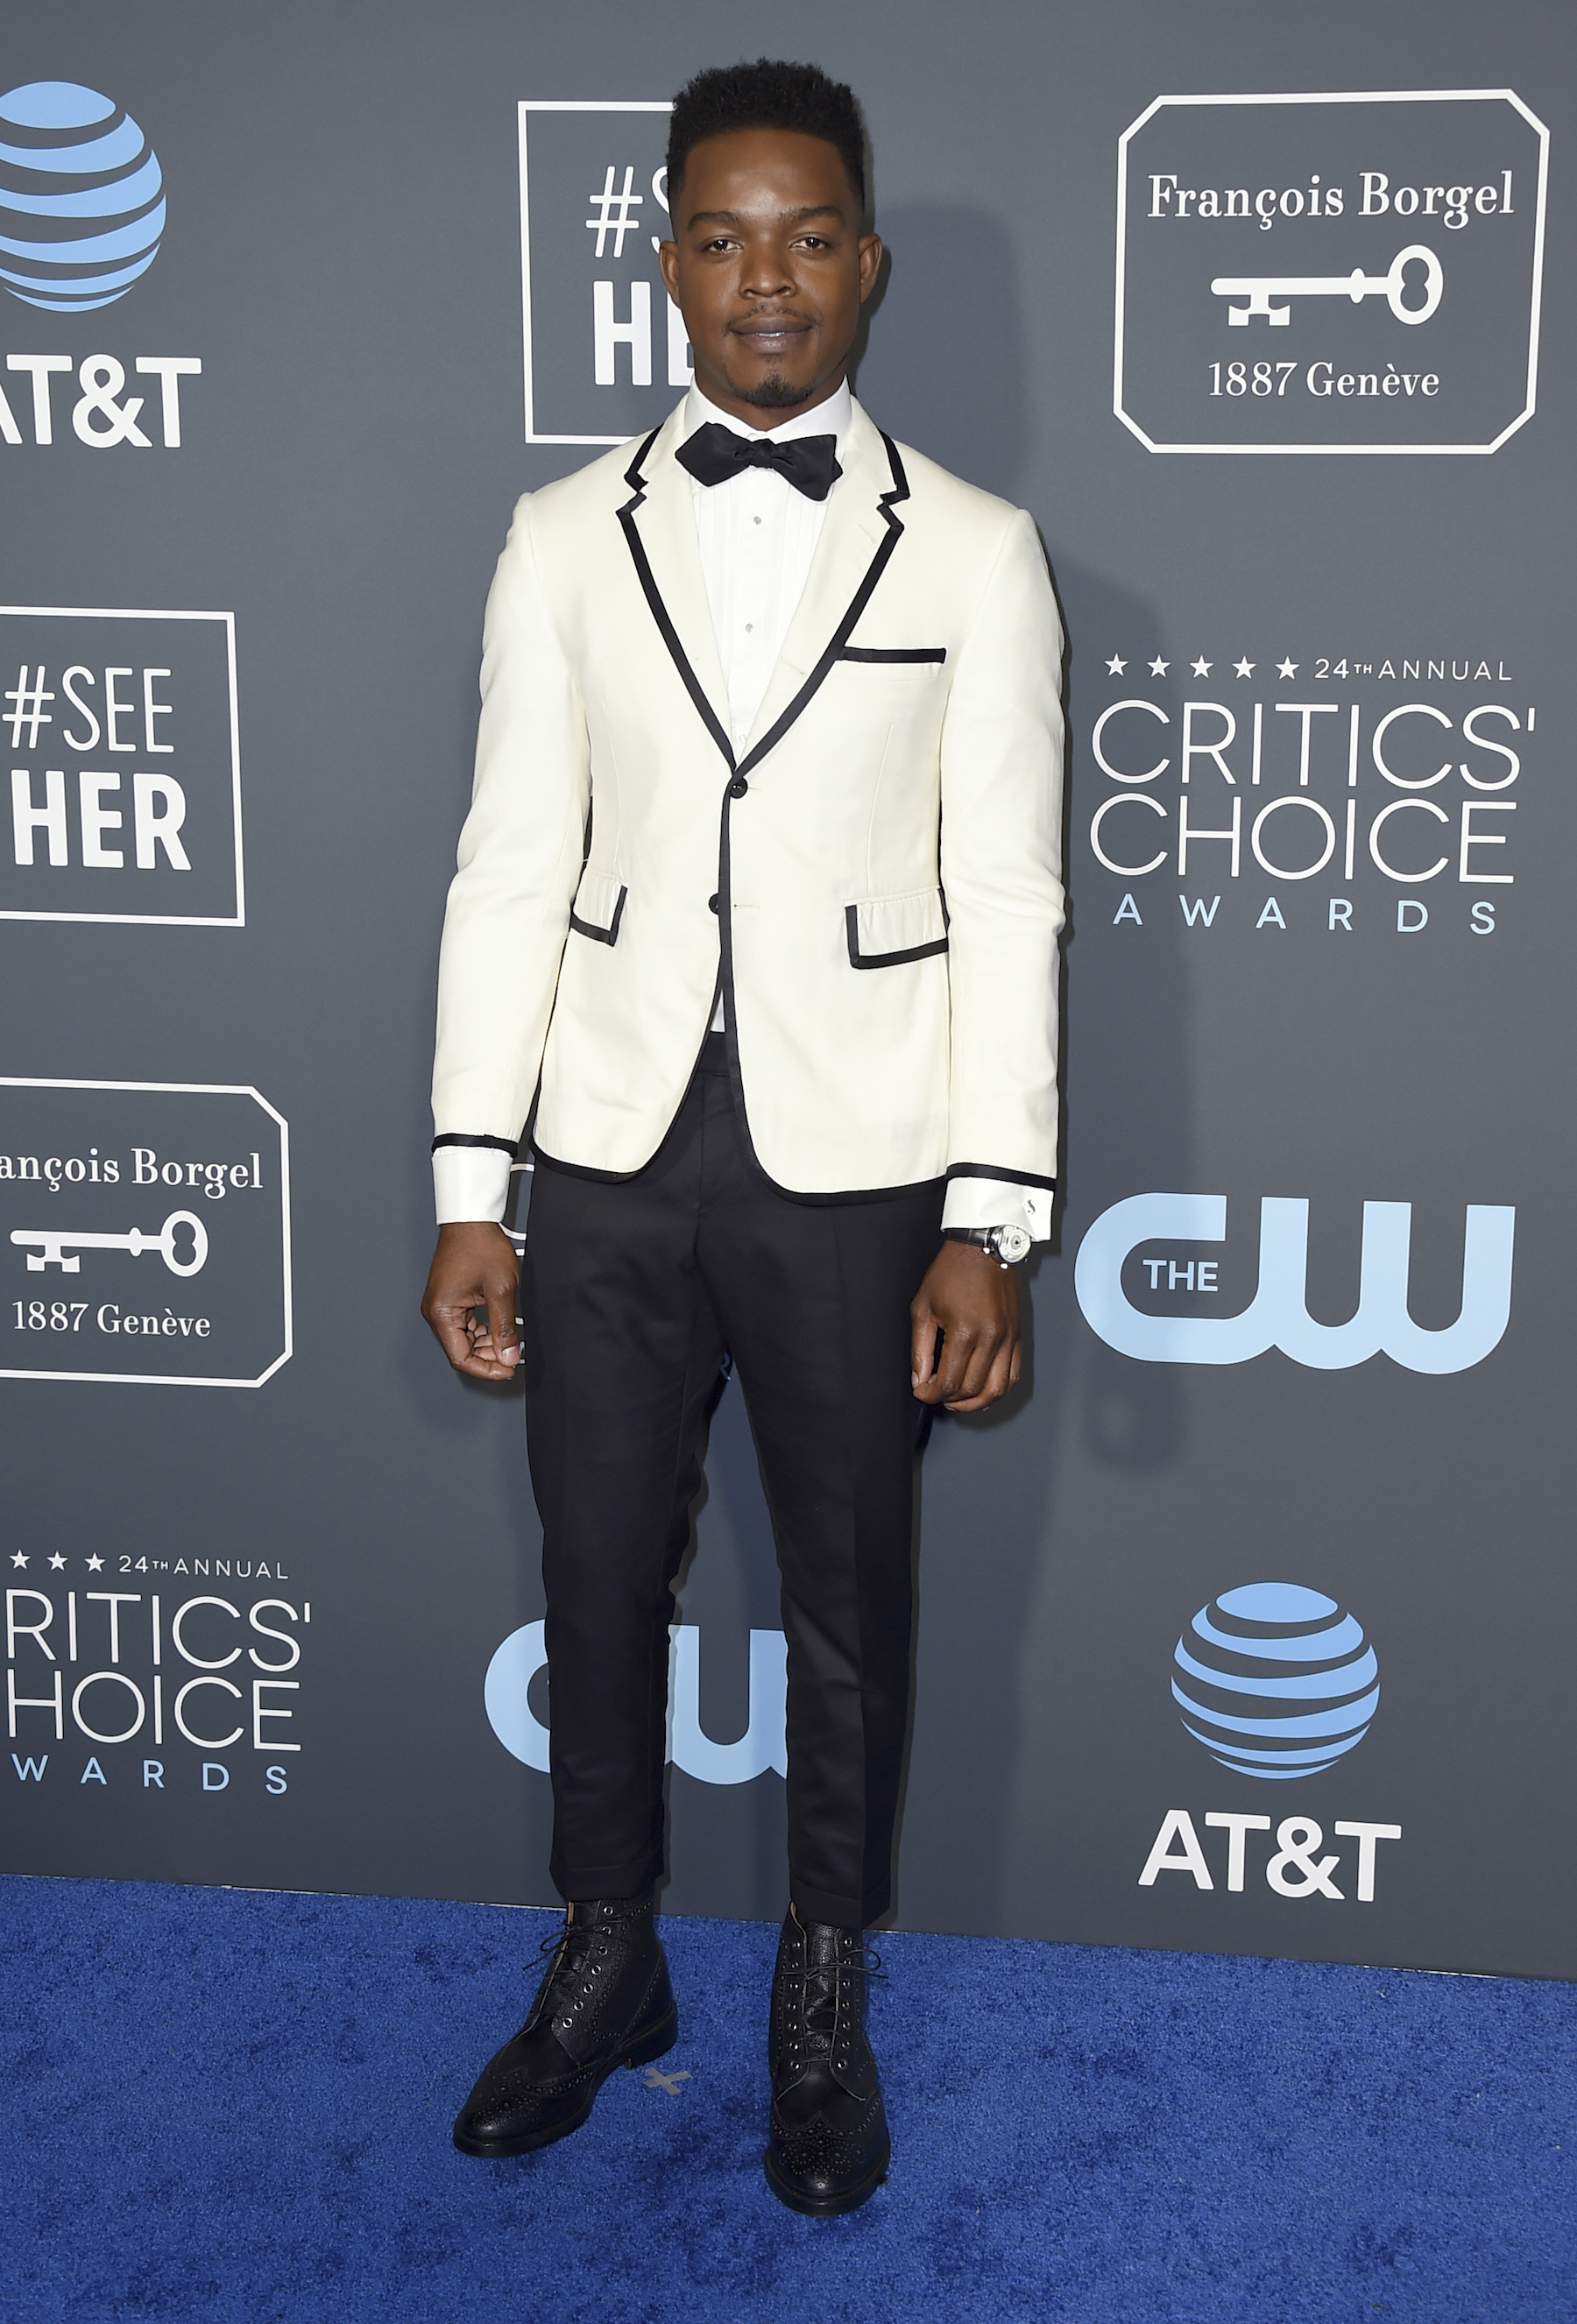 "<div class=""meta image-caption""><div class=""origin-logo origin-image ap""><span>AP</span></div><span class=""caption-text"">Stephan James arrives at the 24th annual Critics' Choice Awards on Sunday, Jan. 13, 2019, at the Barker Hangar in Santa Monica, Calif. (Jordan Strauss/Invision/AP)</span></div>"